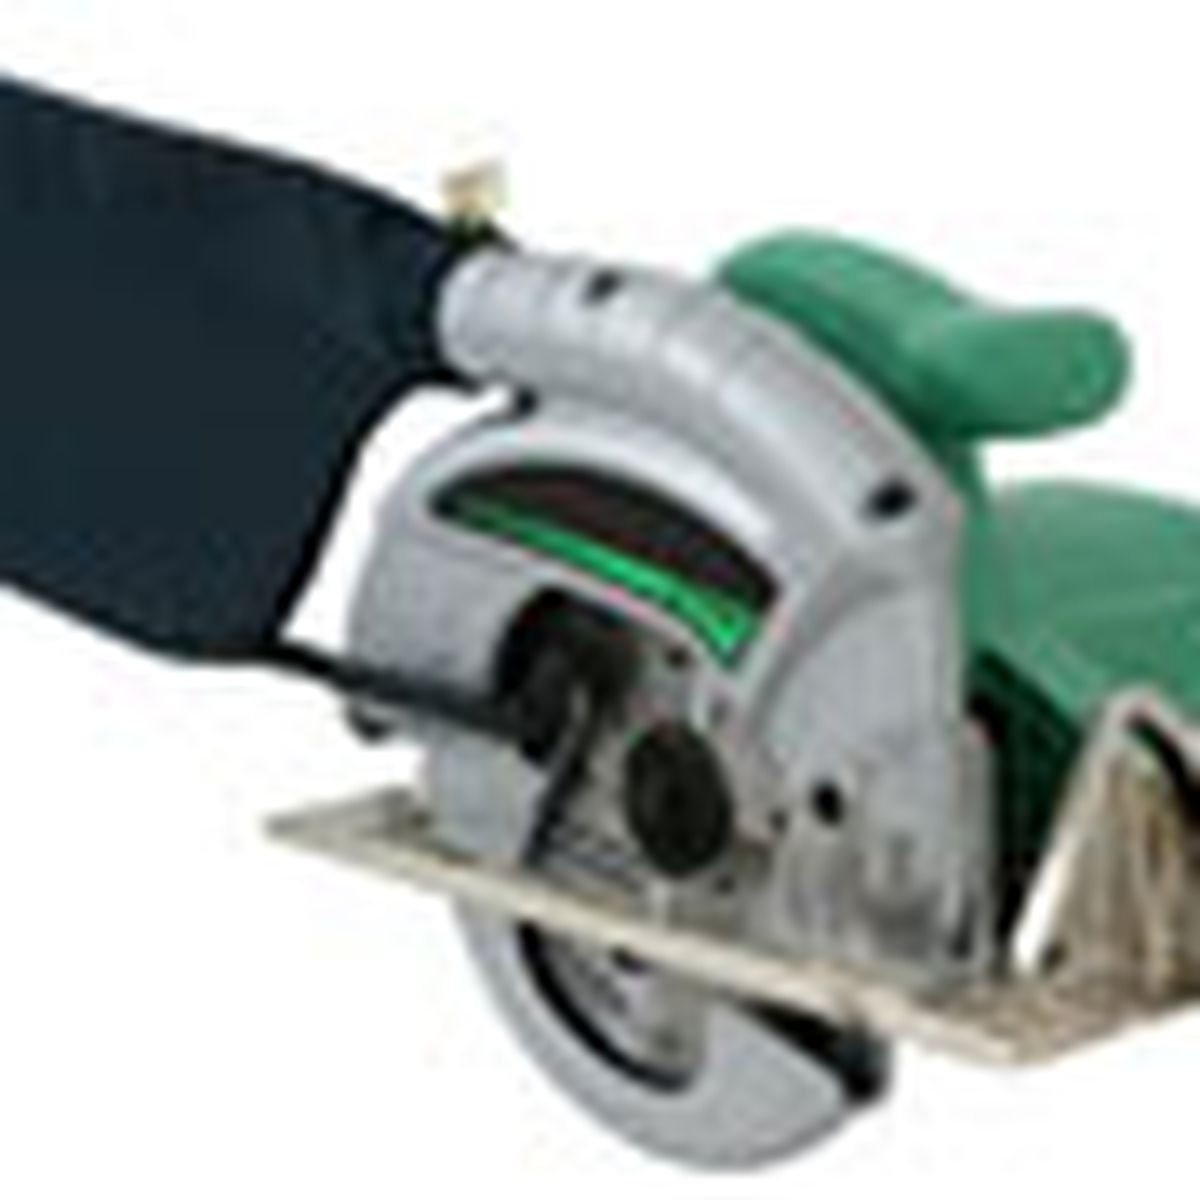 circular saw with dust-collection